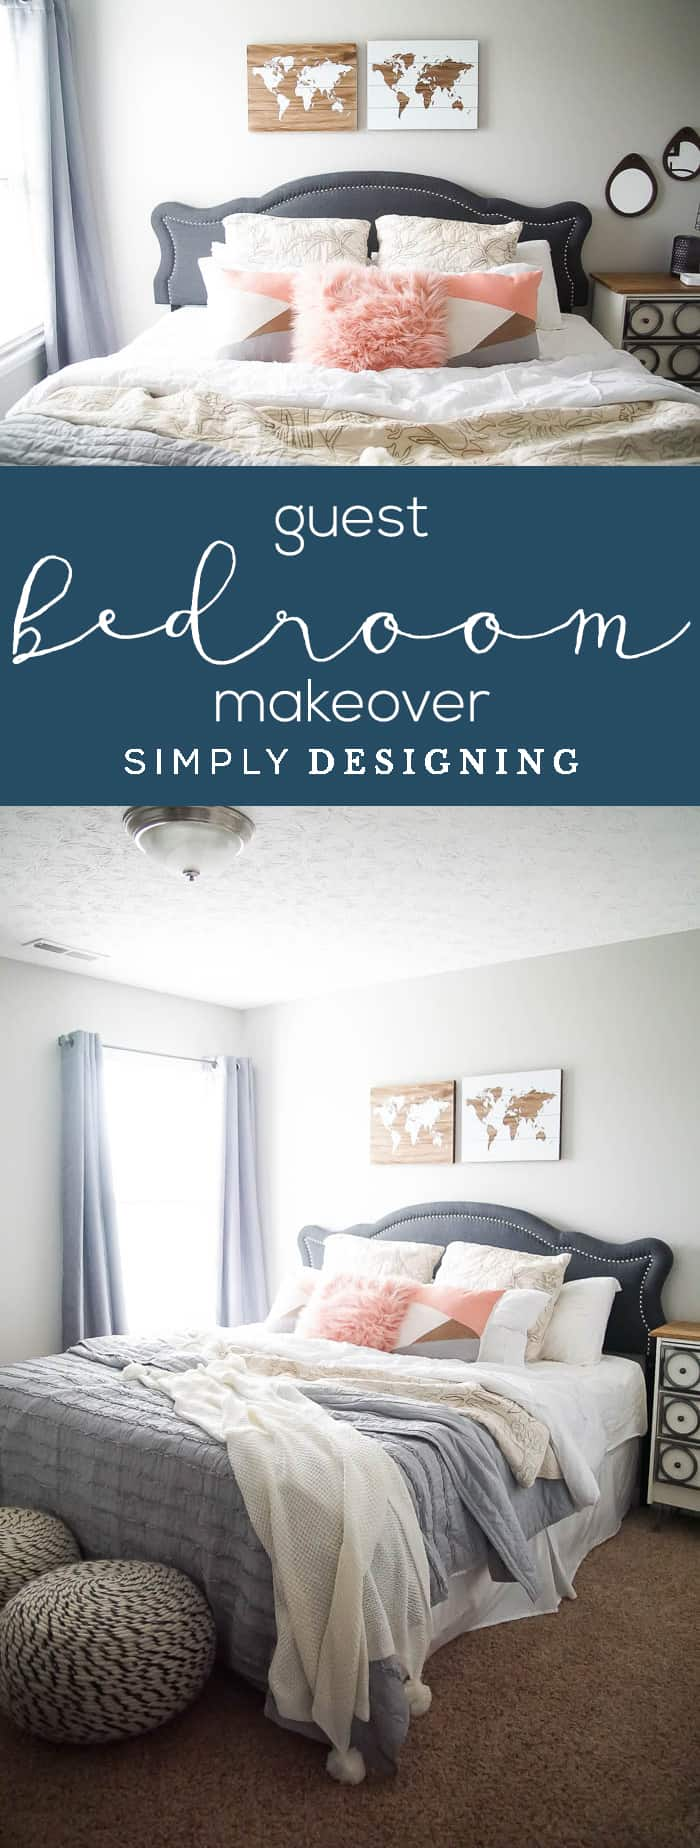 Guest Bedroom Makeover - How to make a Guest Room Comfortable